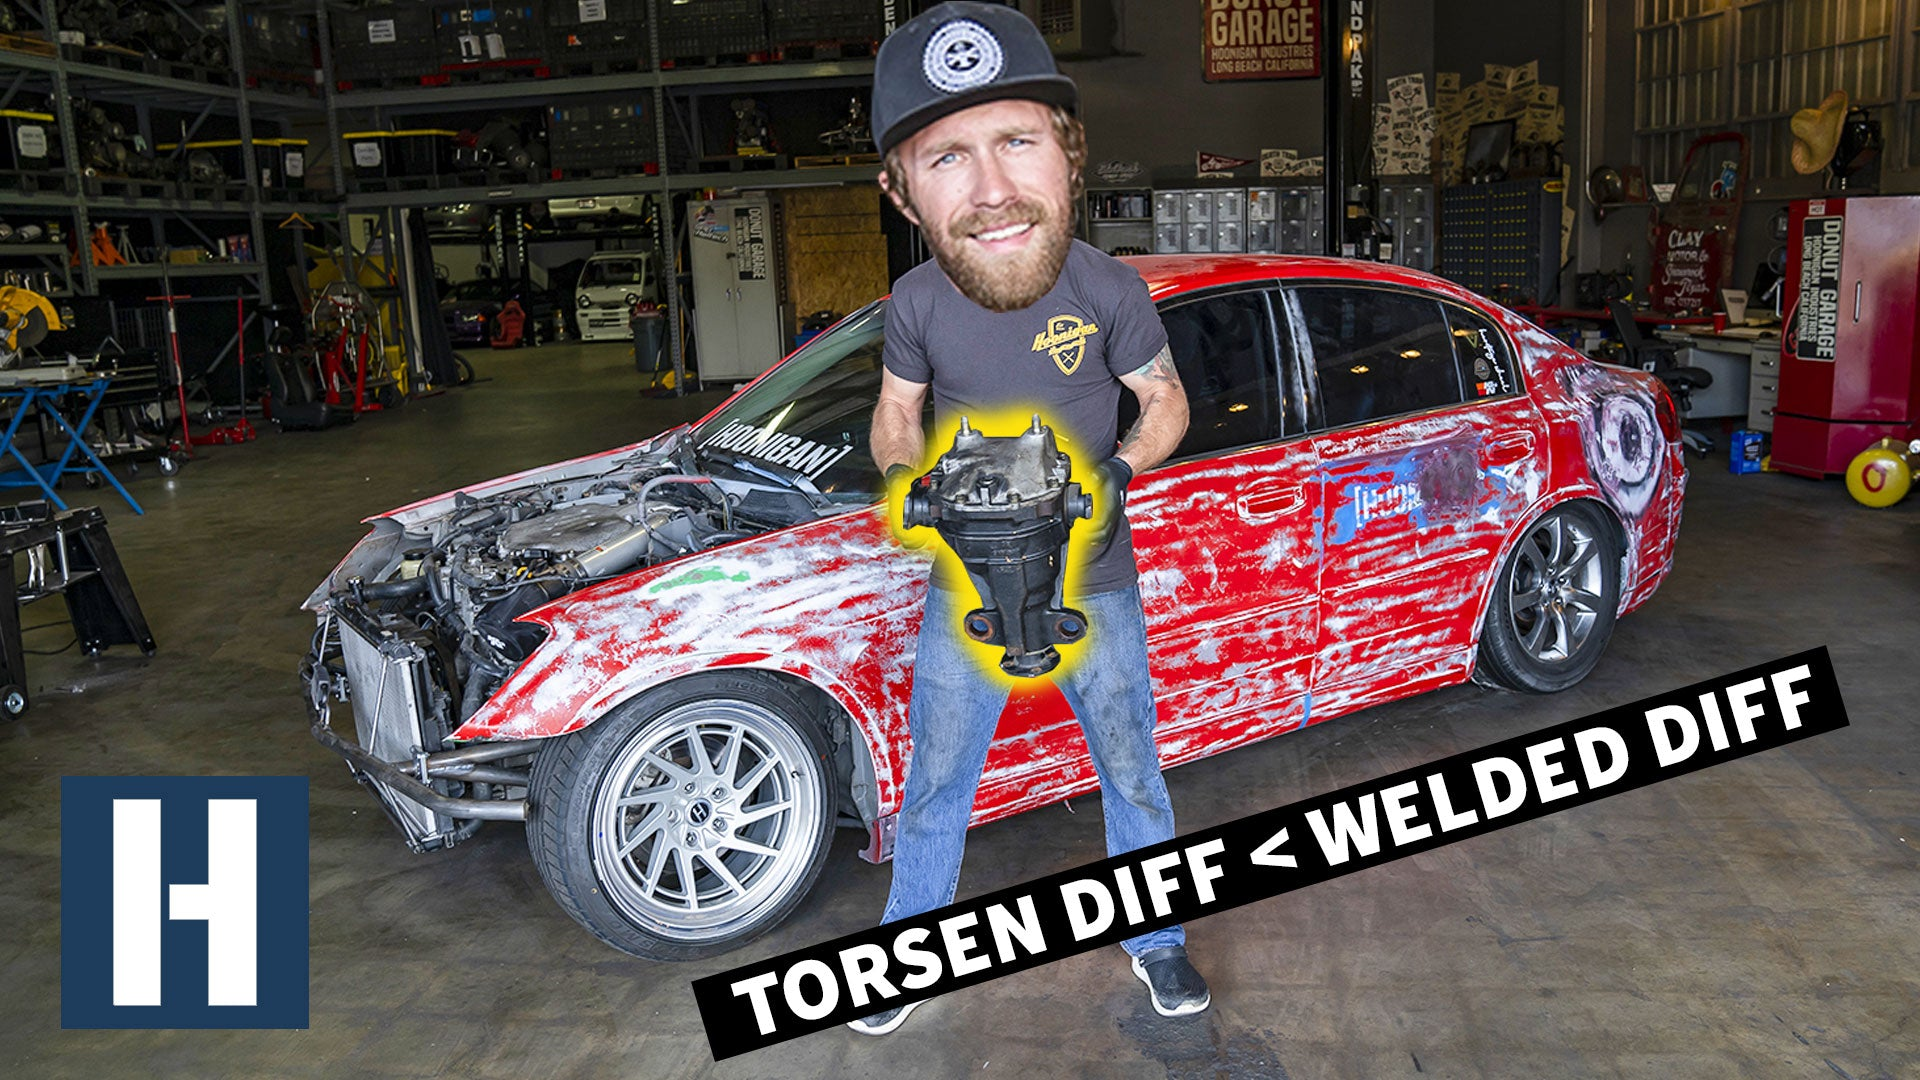 b83ebef4f How to Make a Car More Driftable! Welded Diff, Stock Handbrake Extension,  and